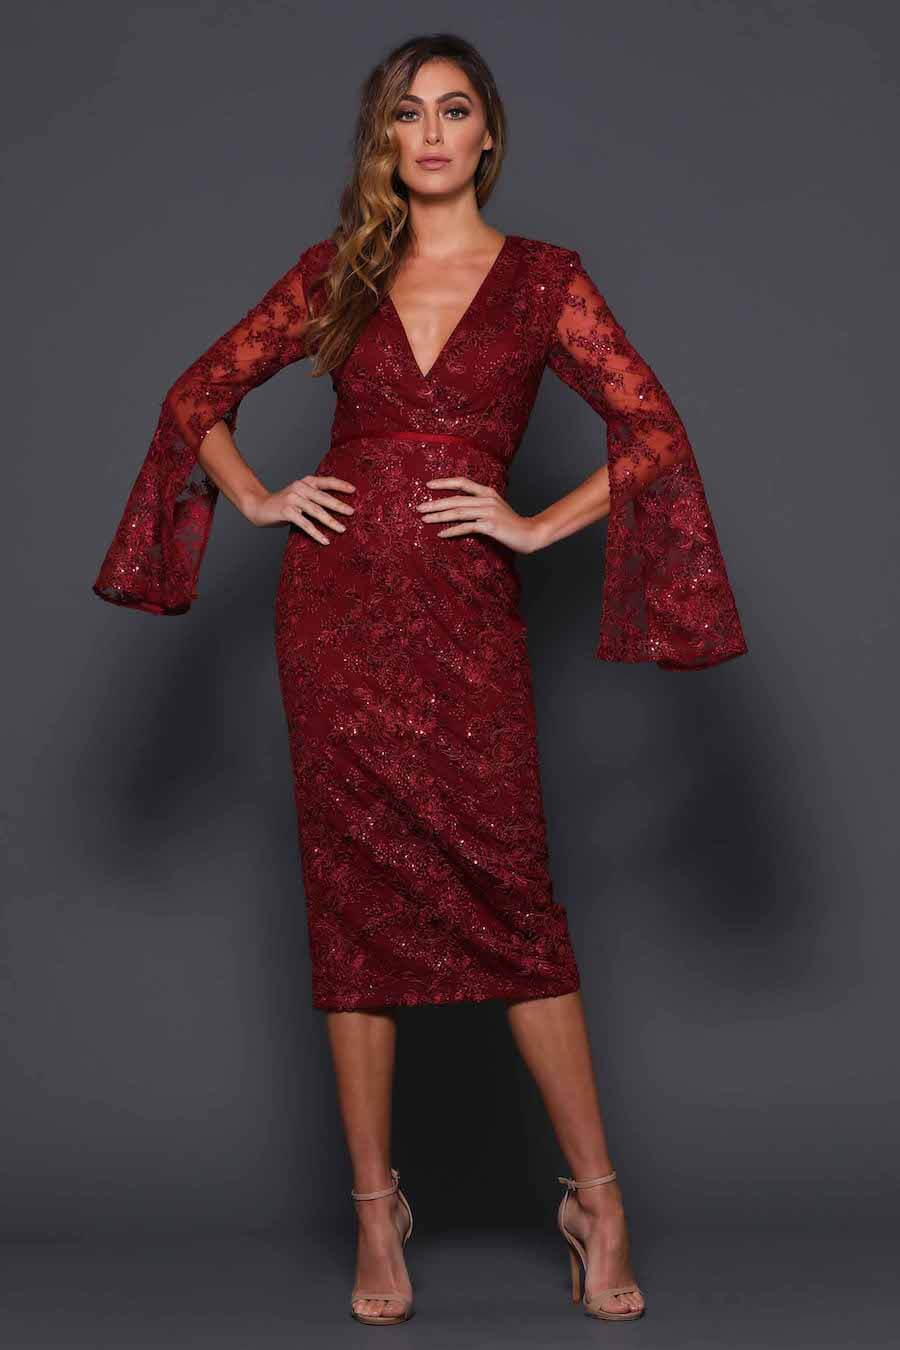 V neckline cocktail dress with sequinned detail and long split sleeves